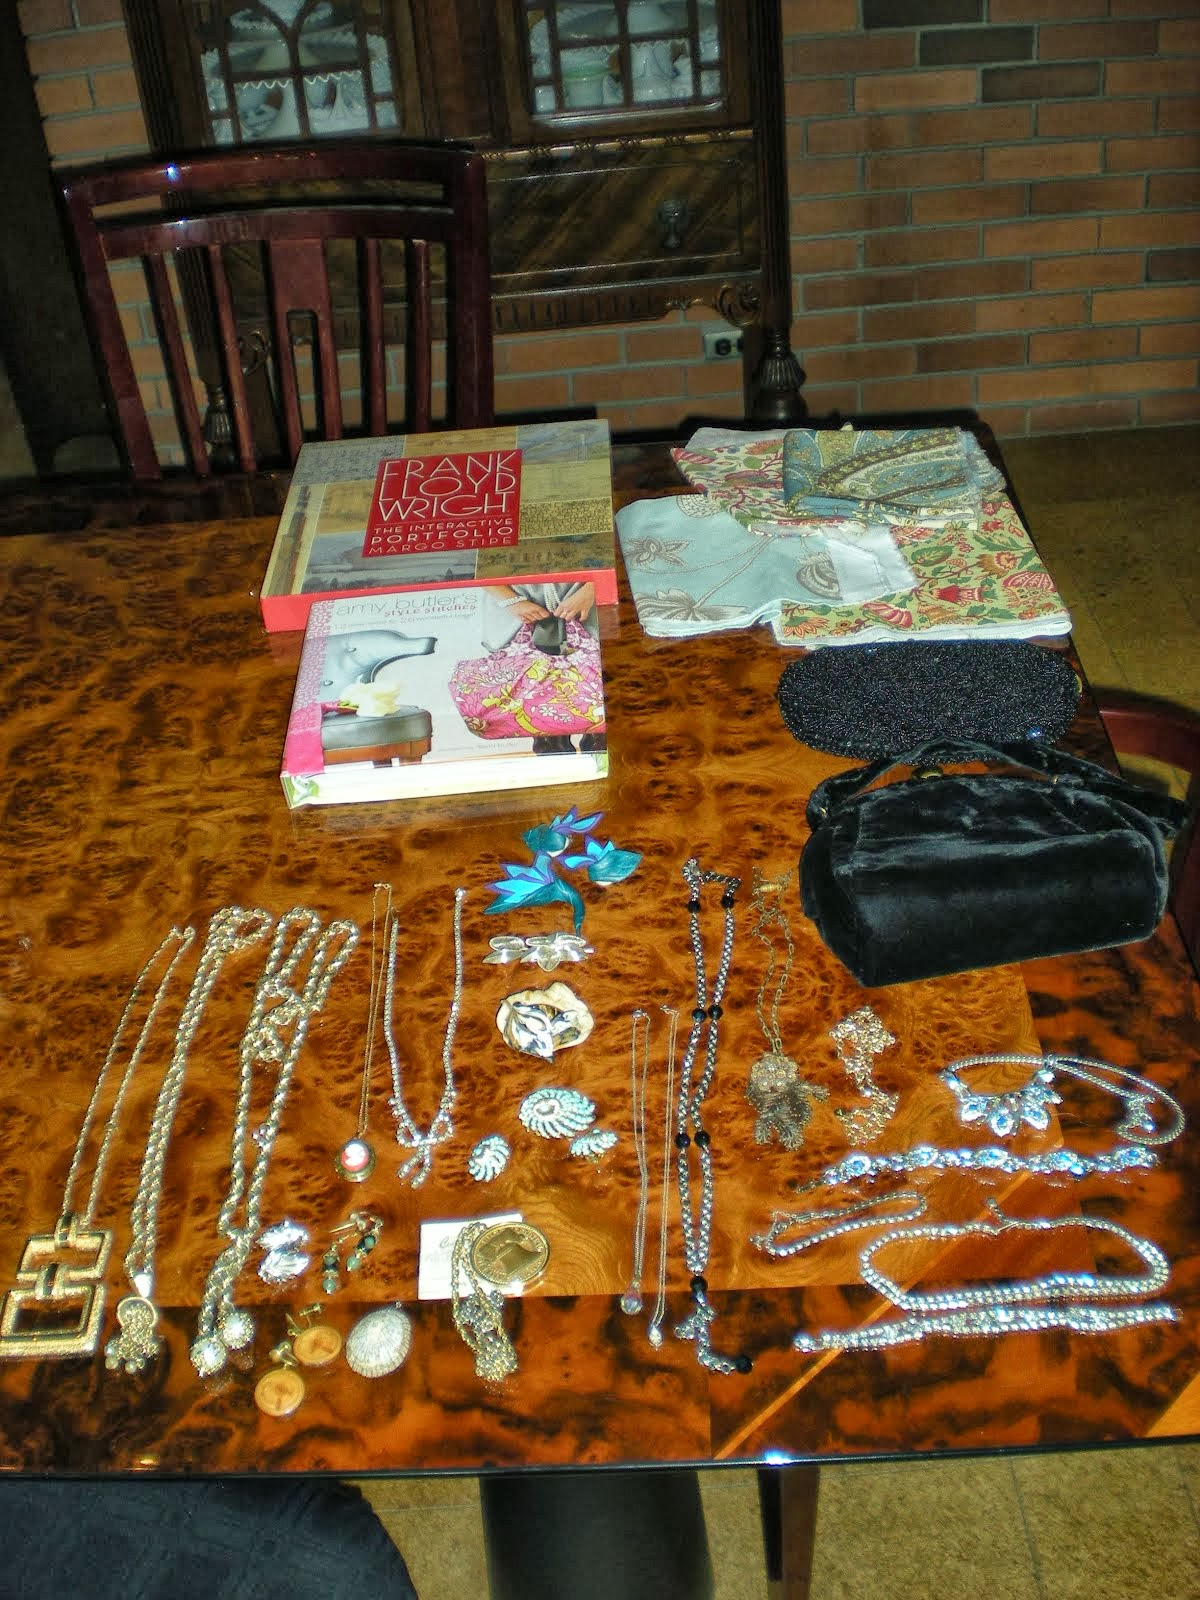 Loads of Jewelry